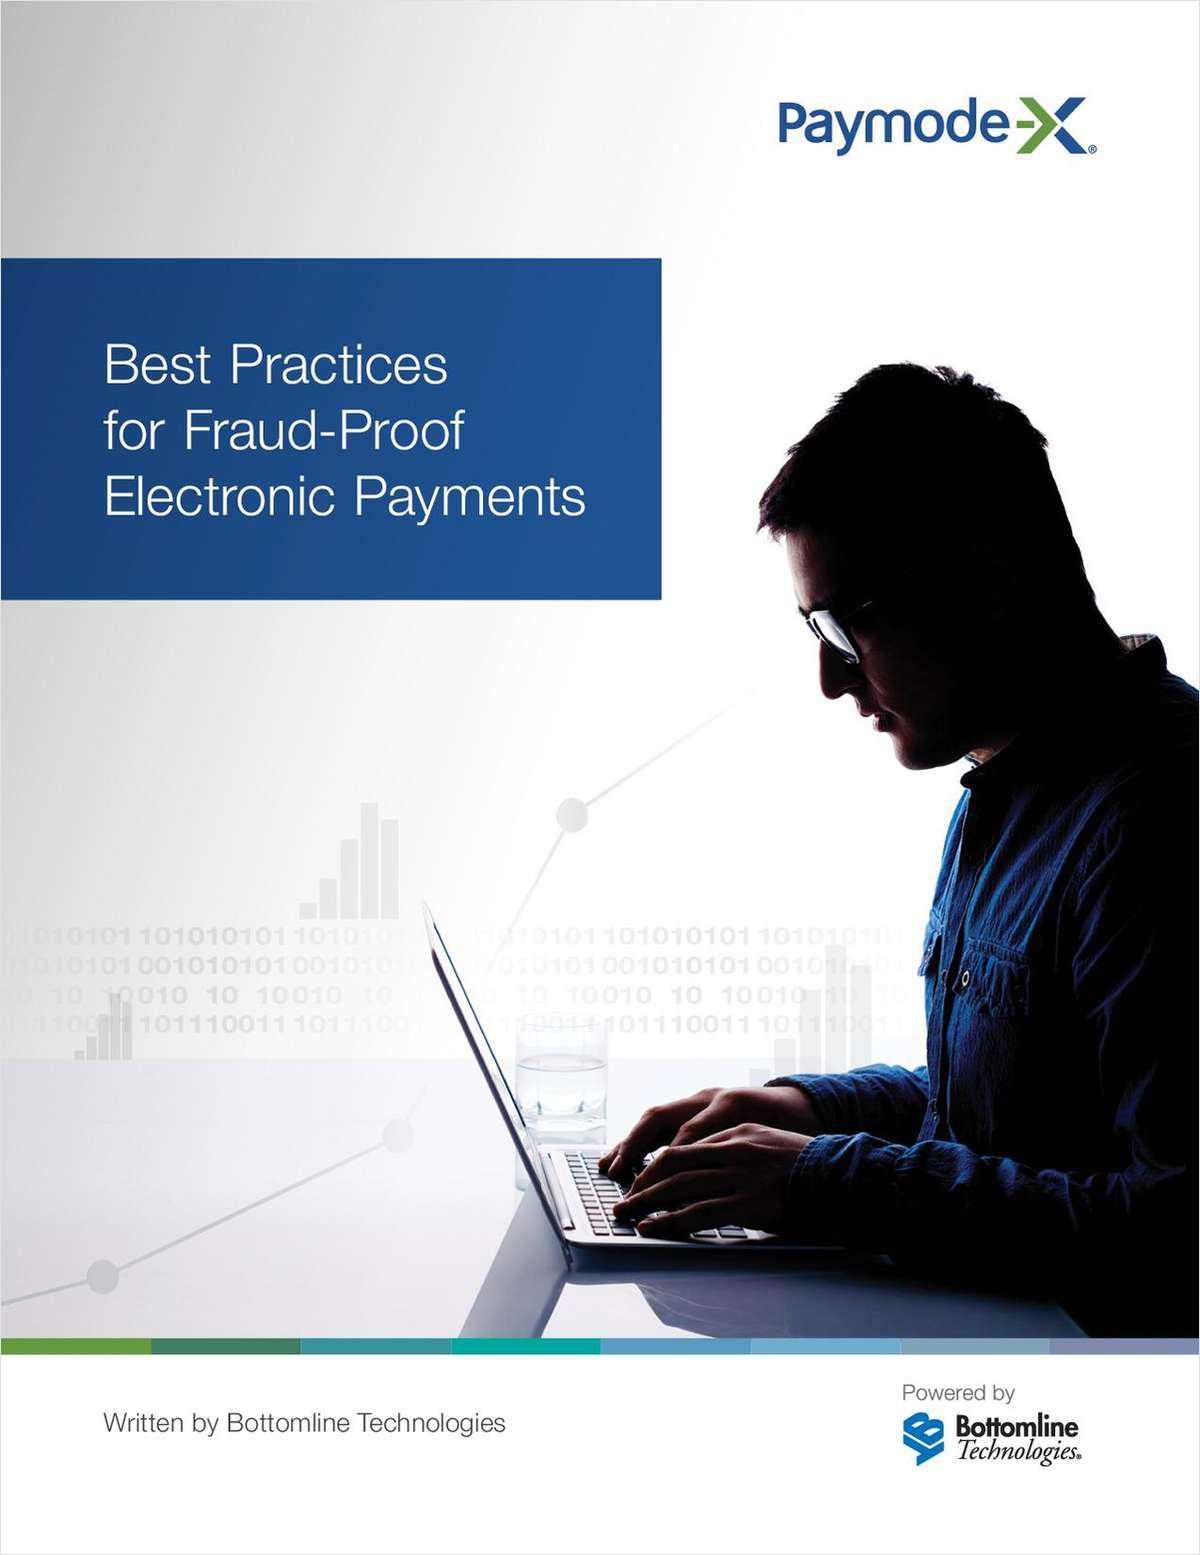 How to Increase Security and Save Money with Fraud-Proof Electronic Payments